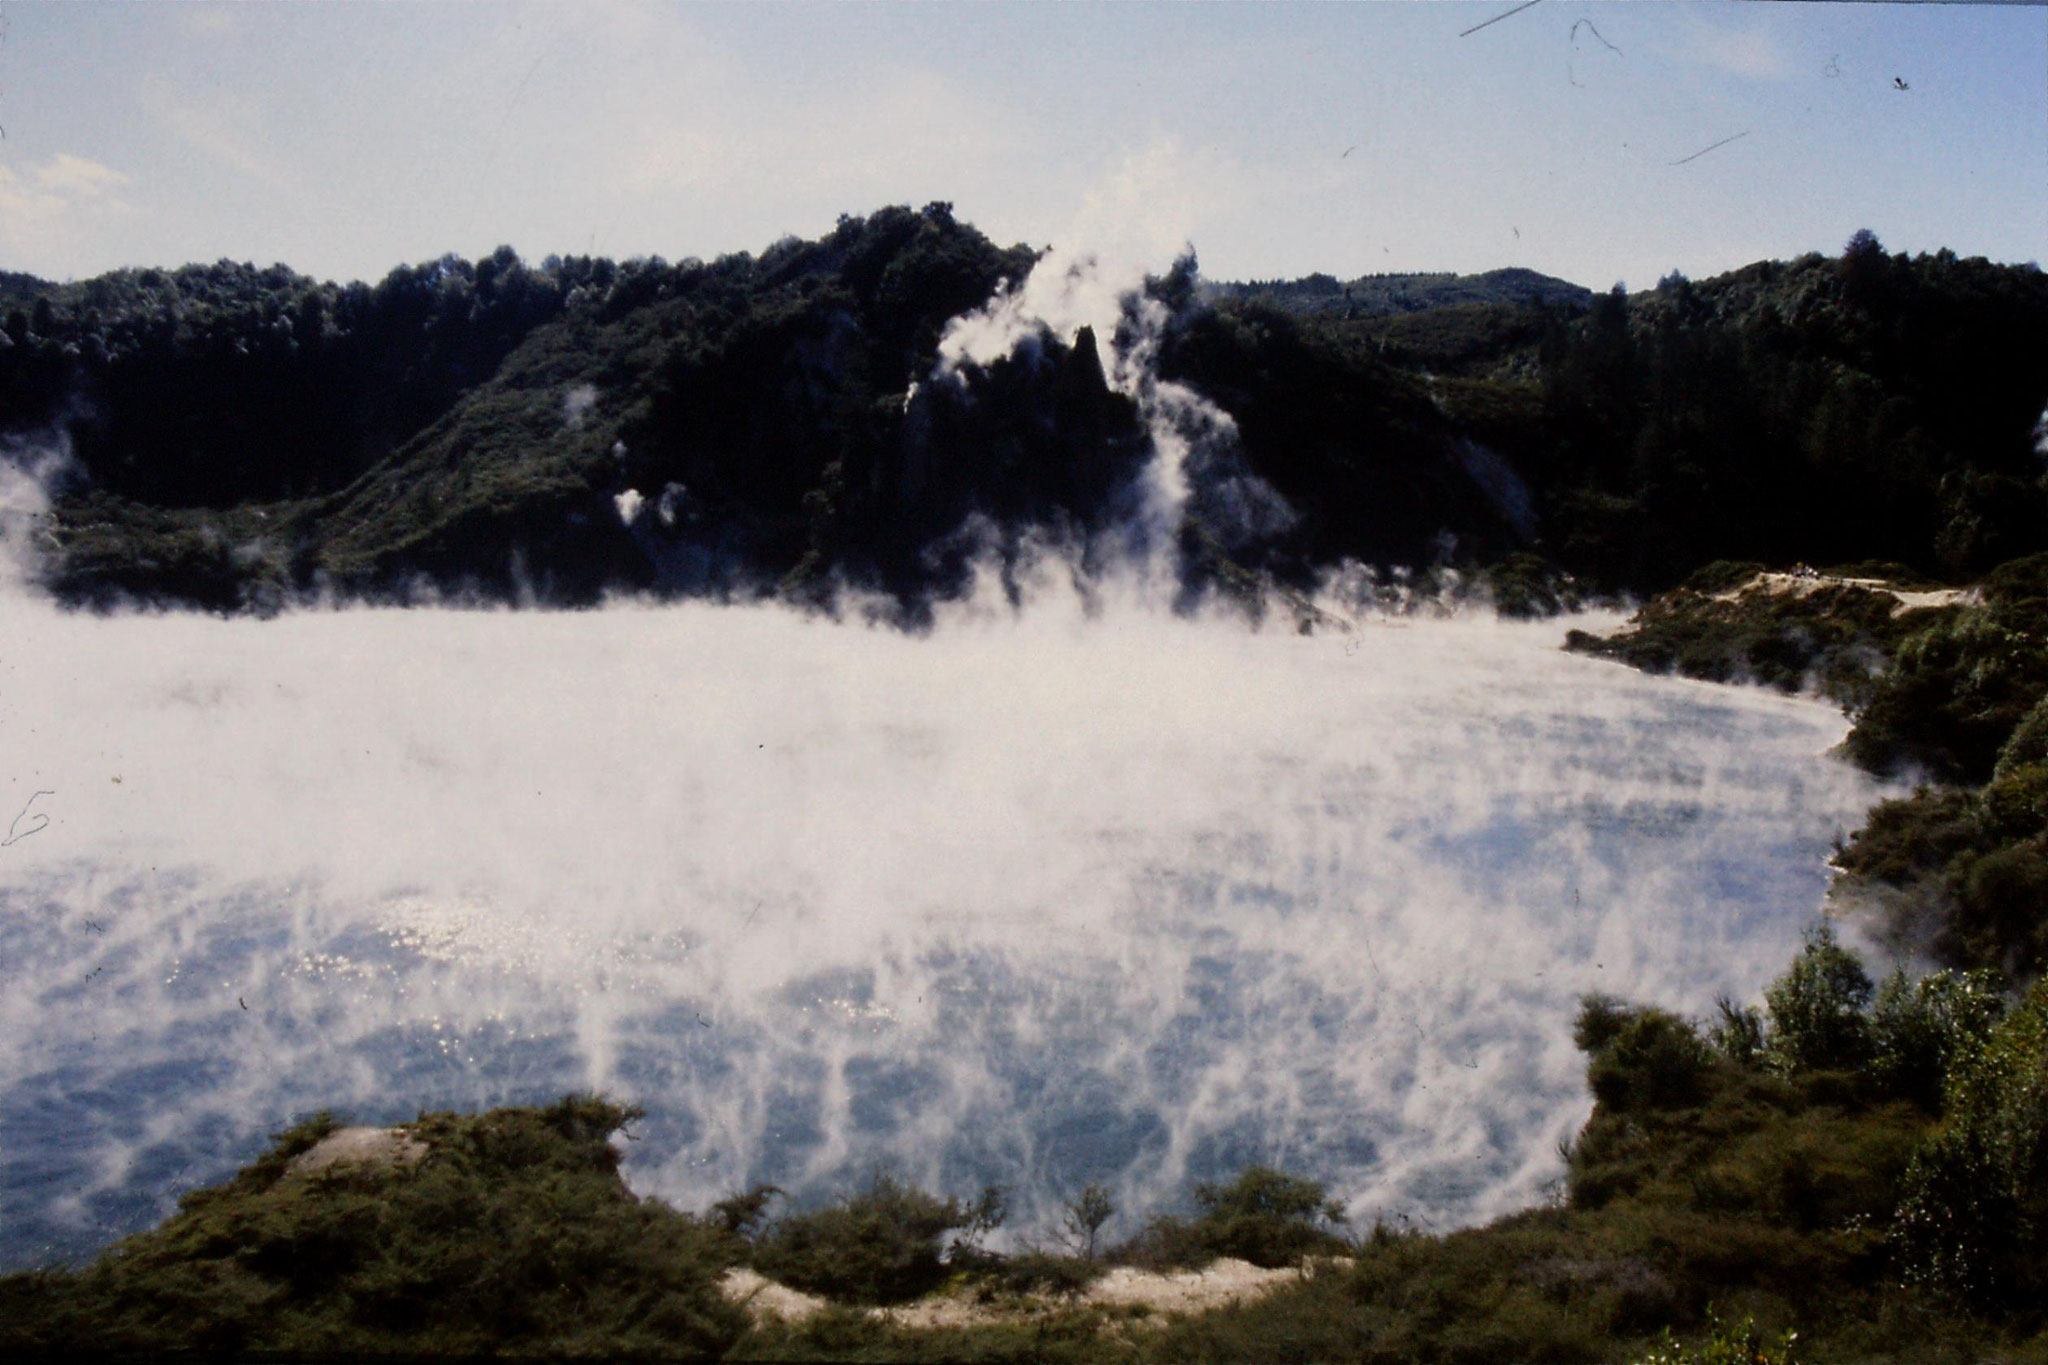 31/8/1990: 27: Waimangu cauldron